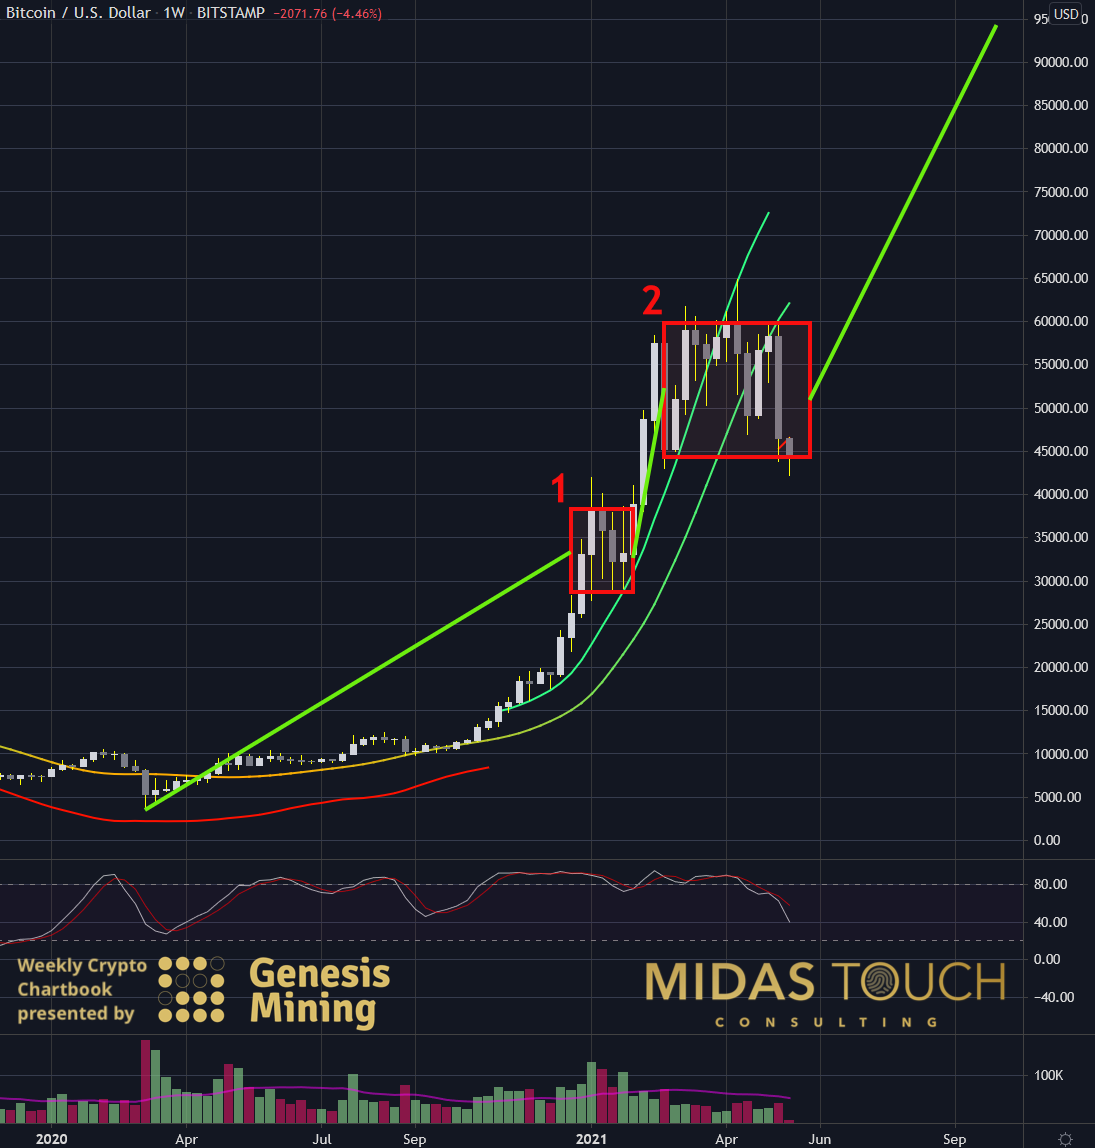 Bitcoin in US-Dollar, weekly chart as of May 17th, 2021.